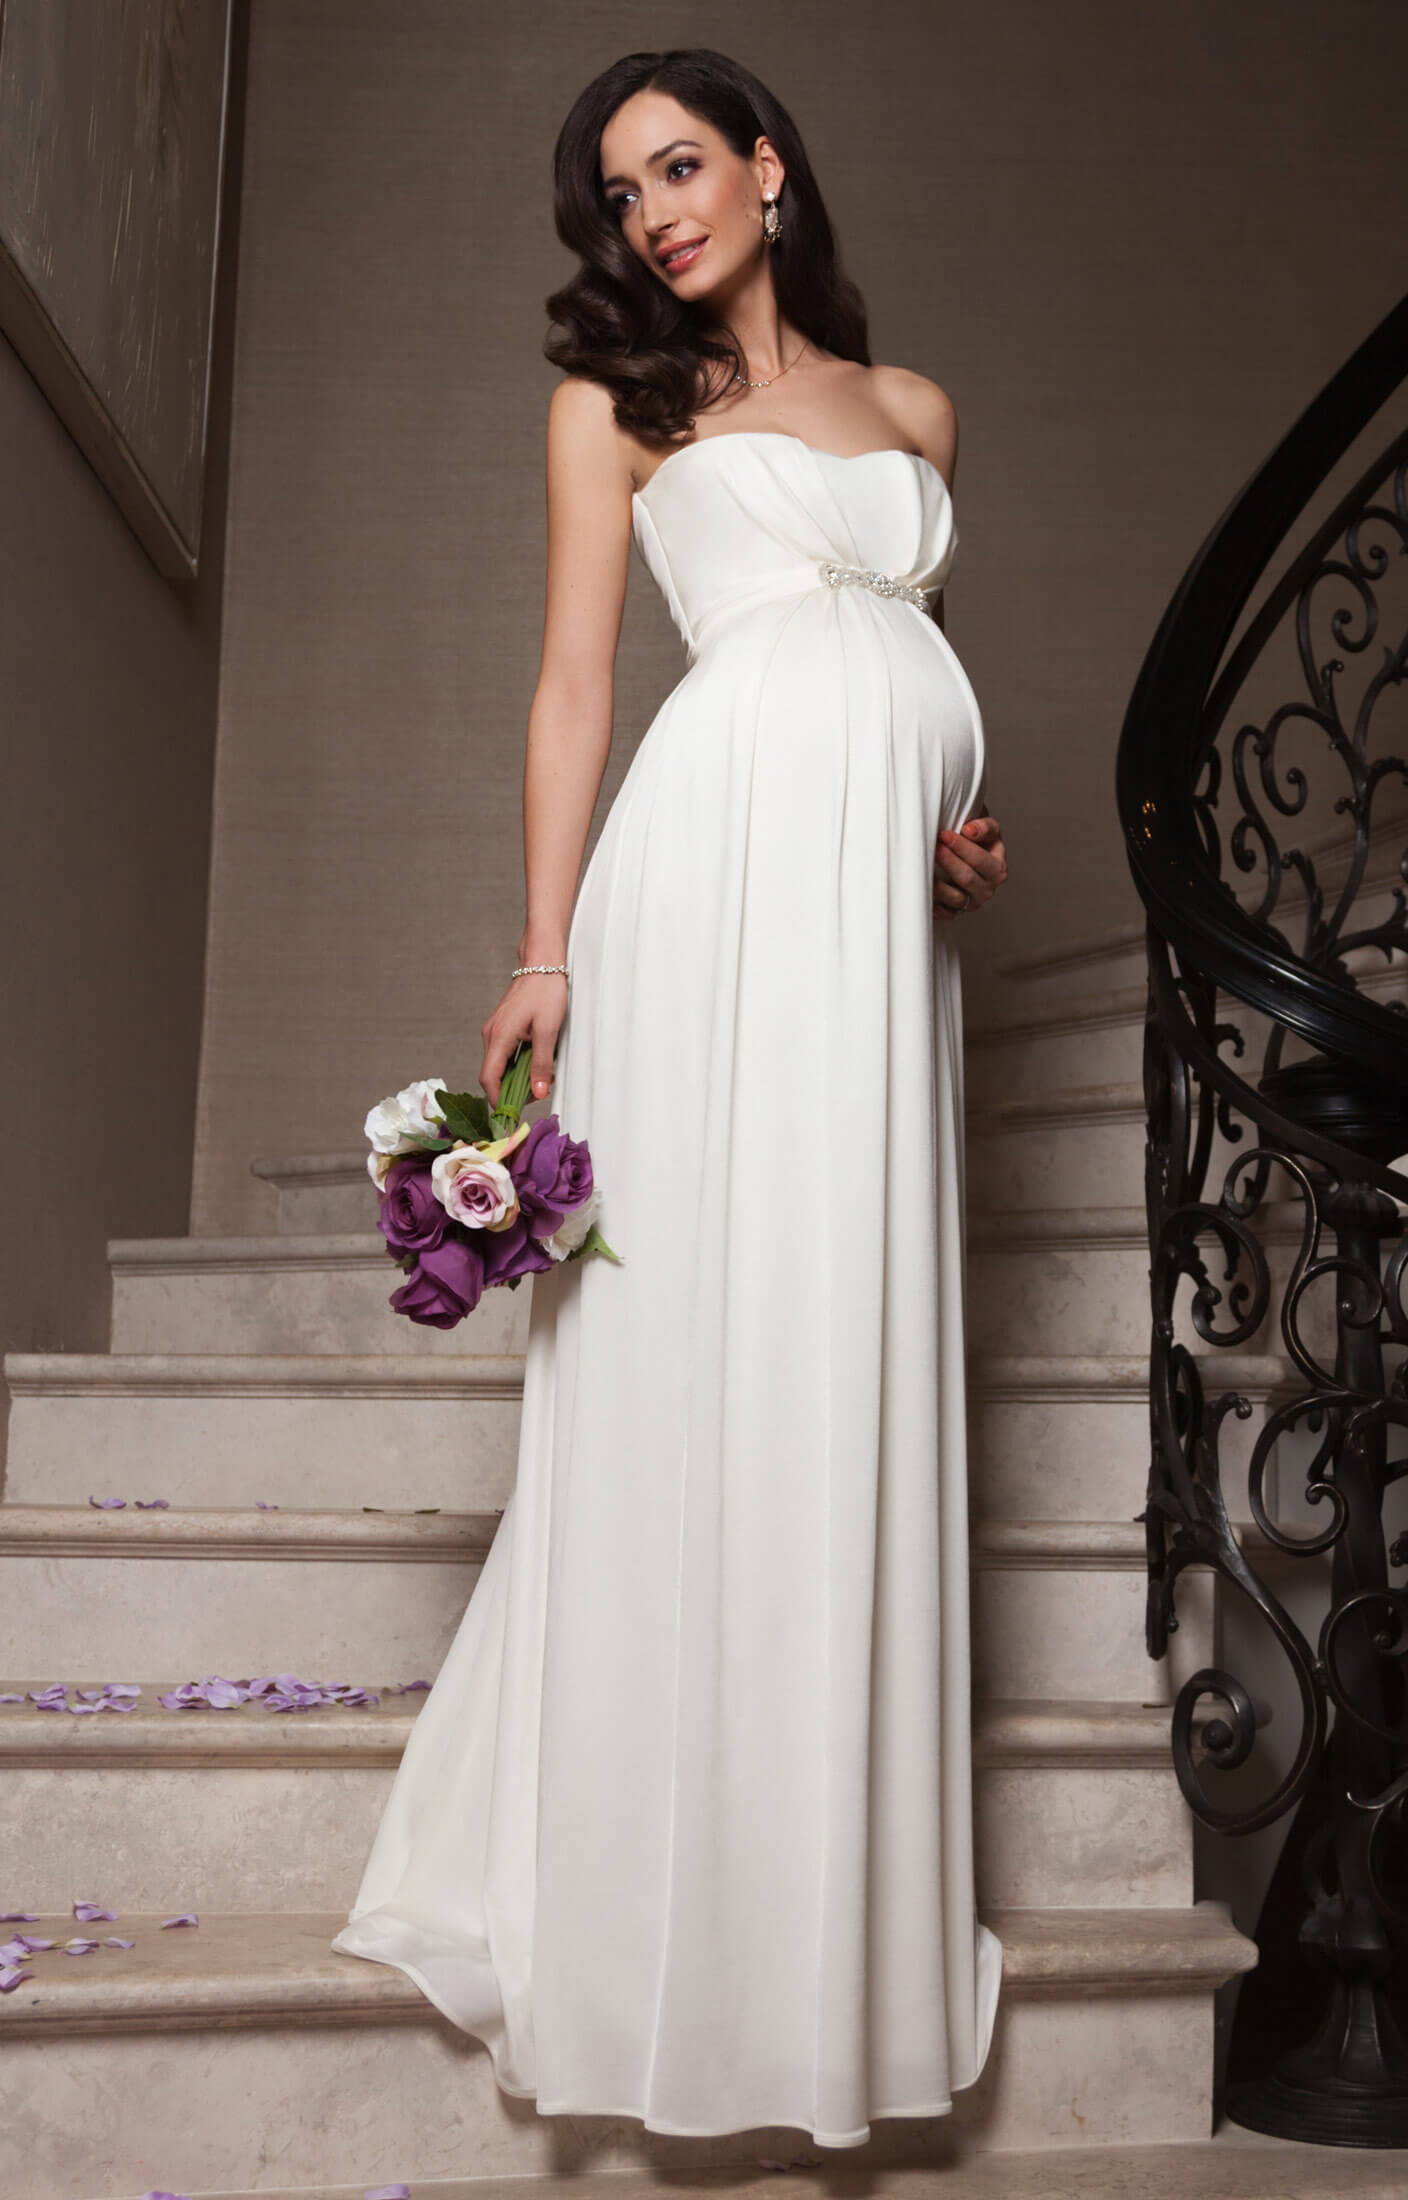 Annabella Maternity Wedding Gown (Ivory) ivory wedding dress Annabella Maternity Wedding Gown Ivory by Tiffany Rose